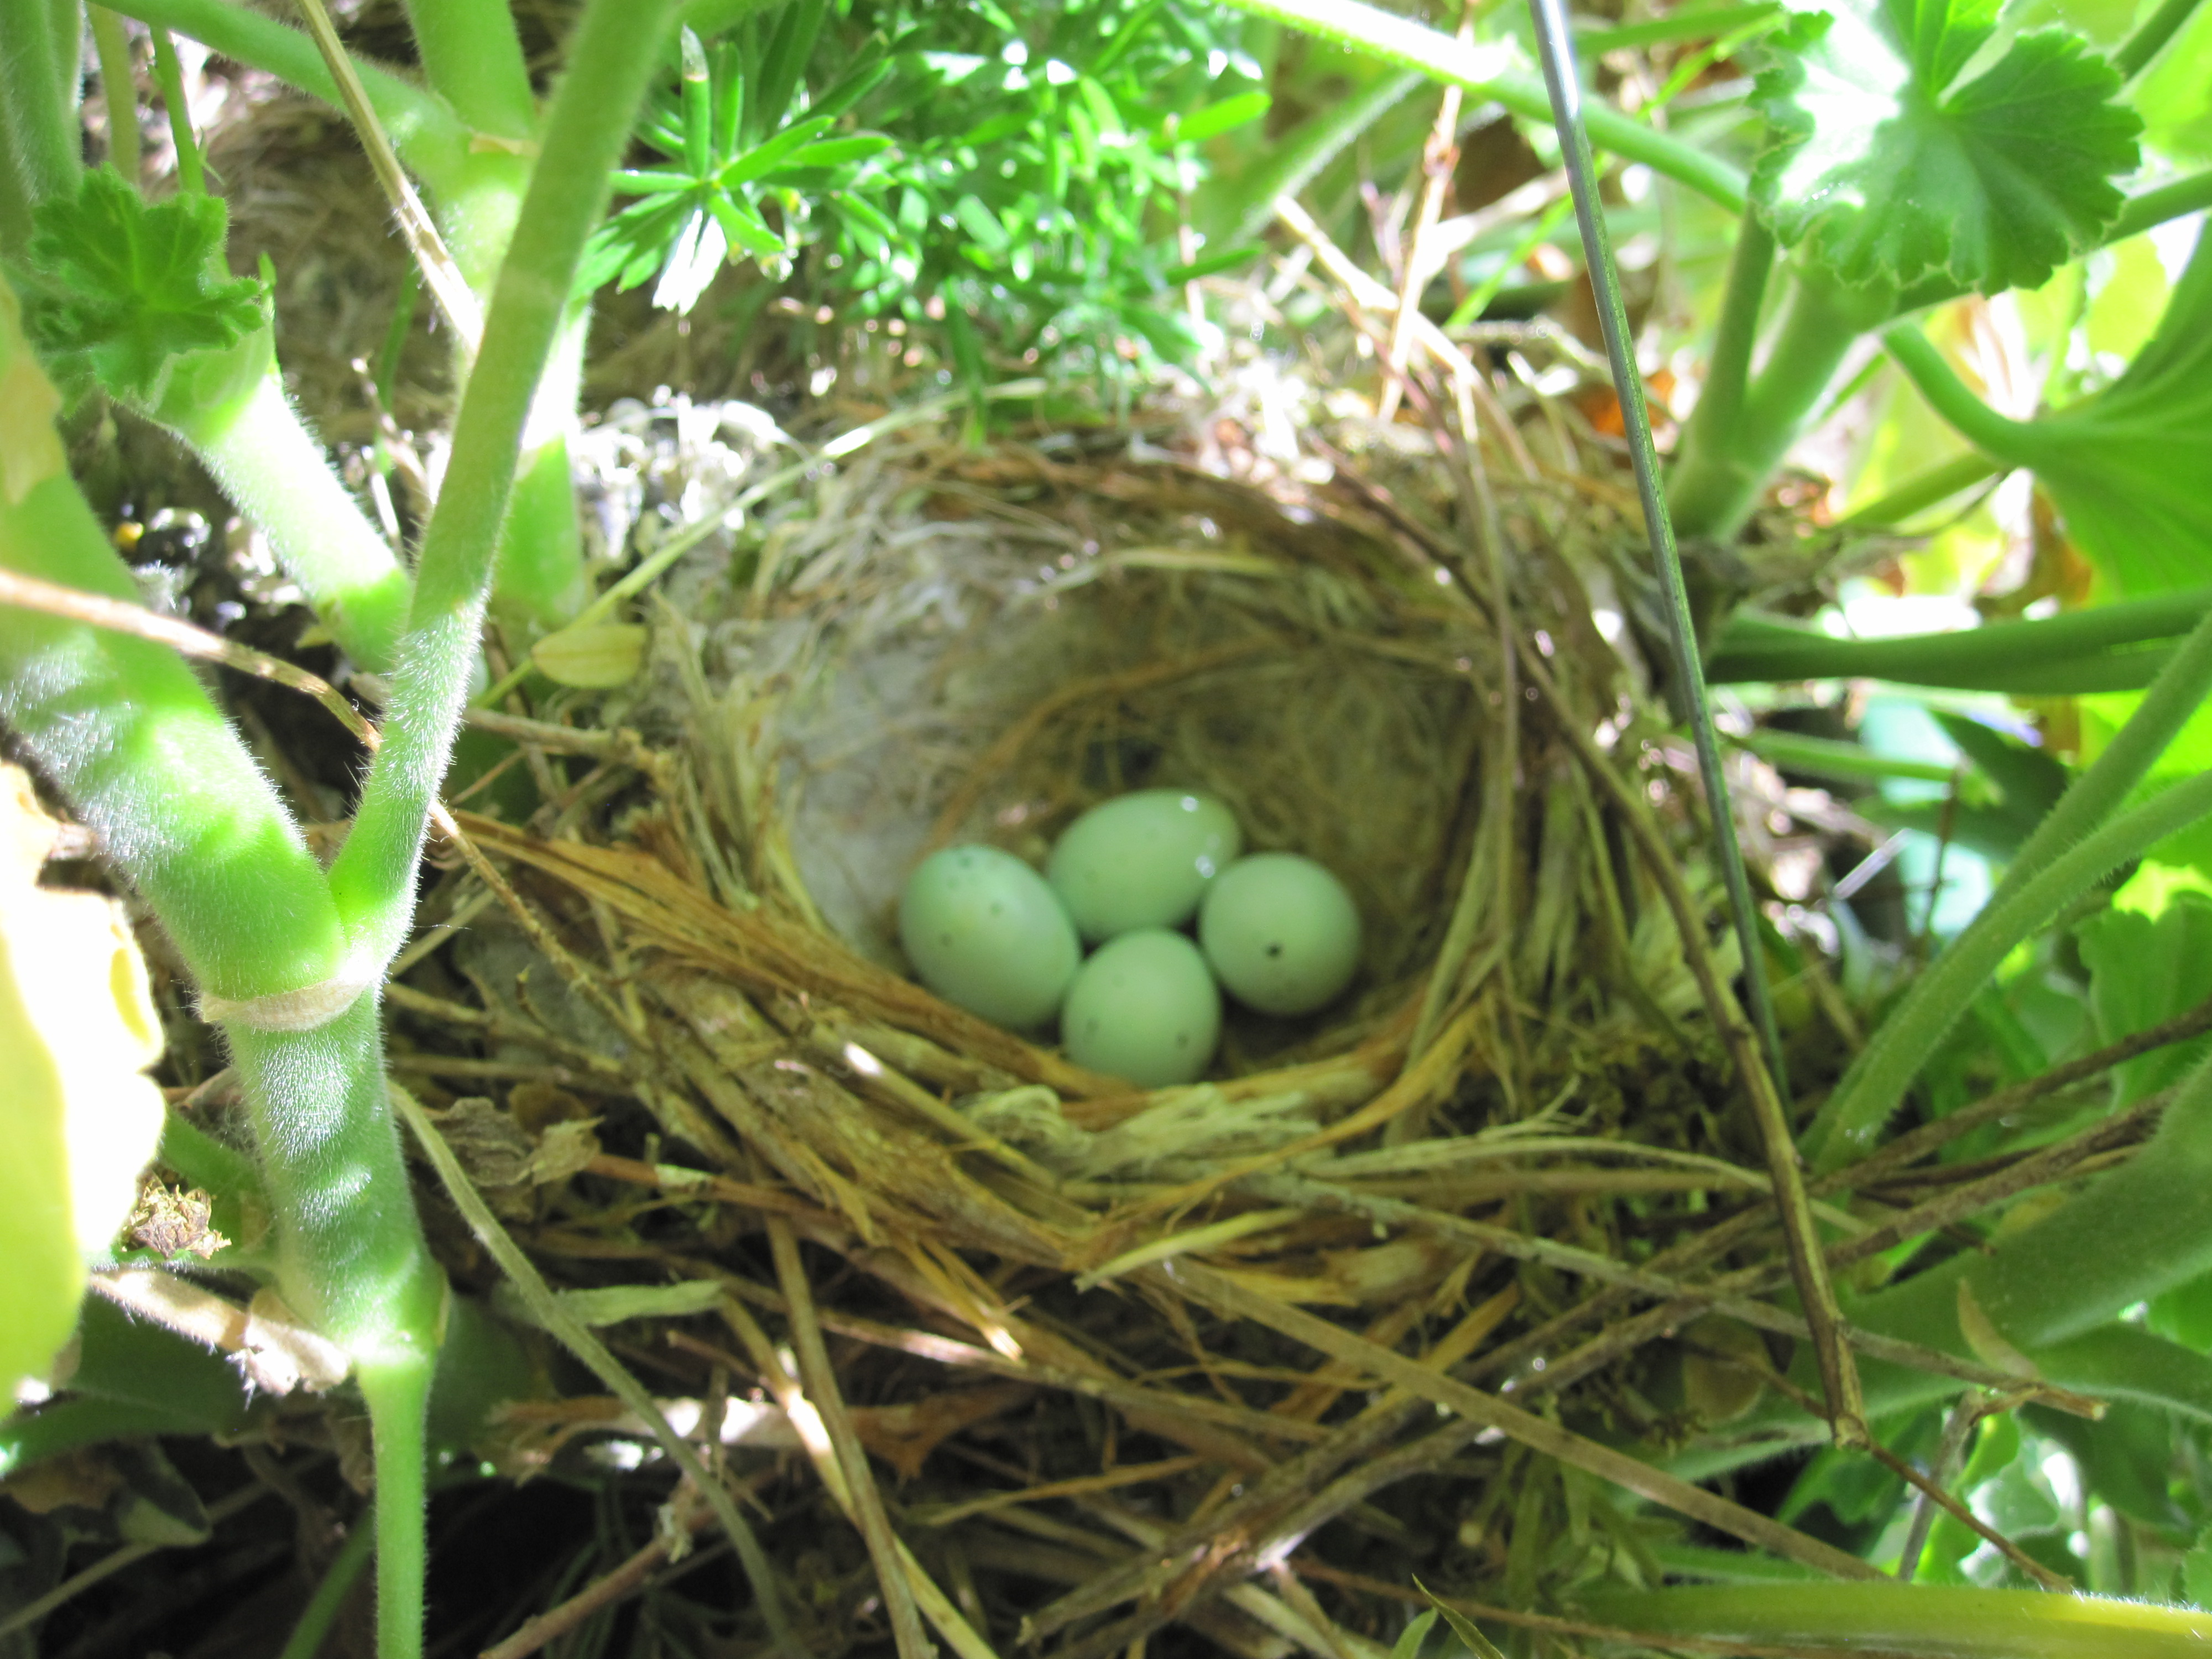 bird nest with eggs | Pics4Learning